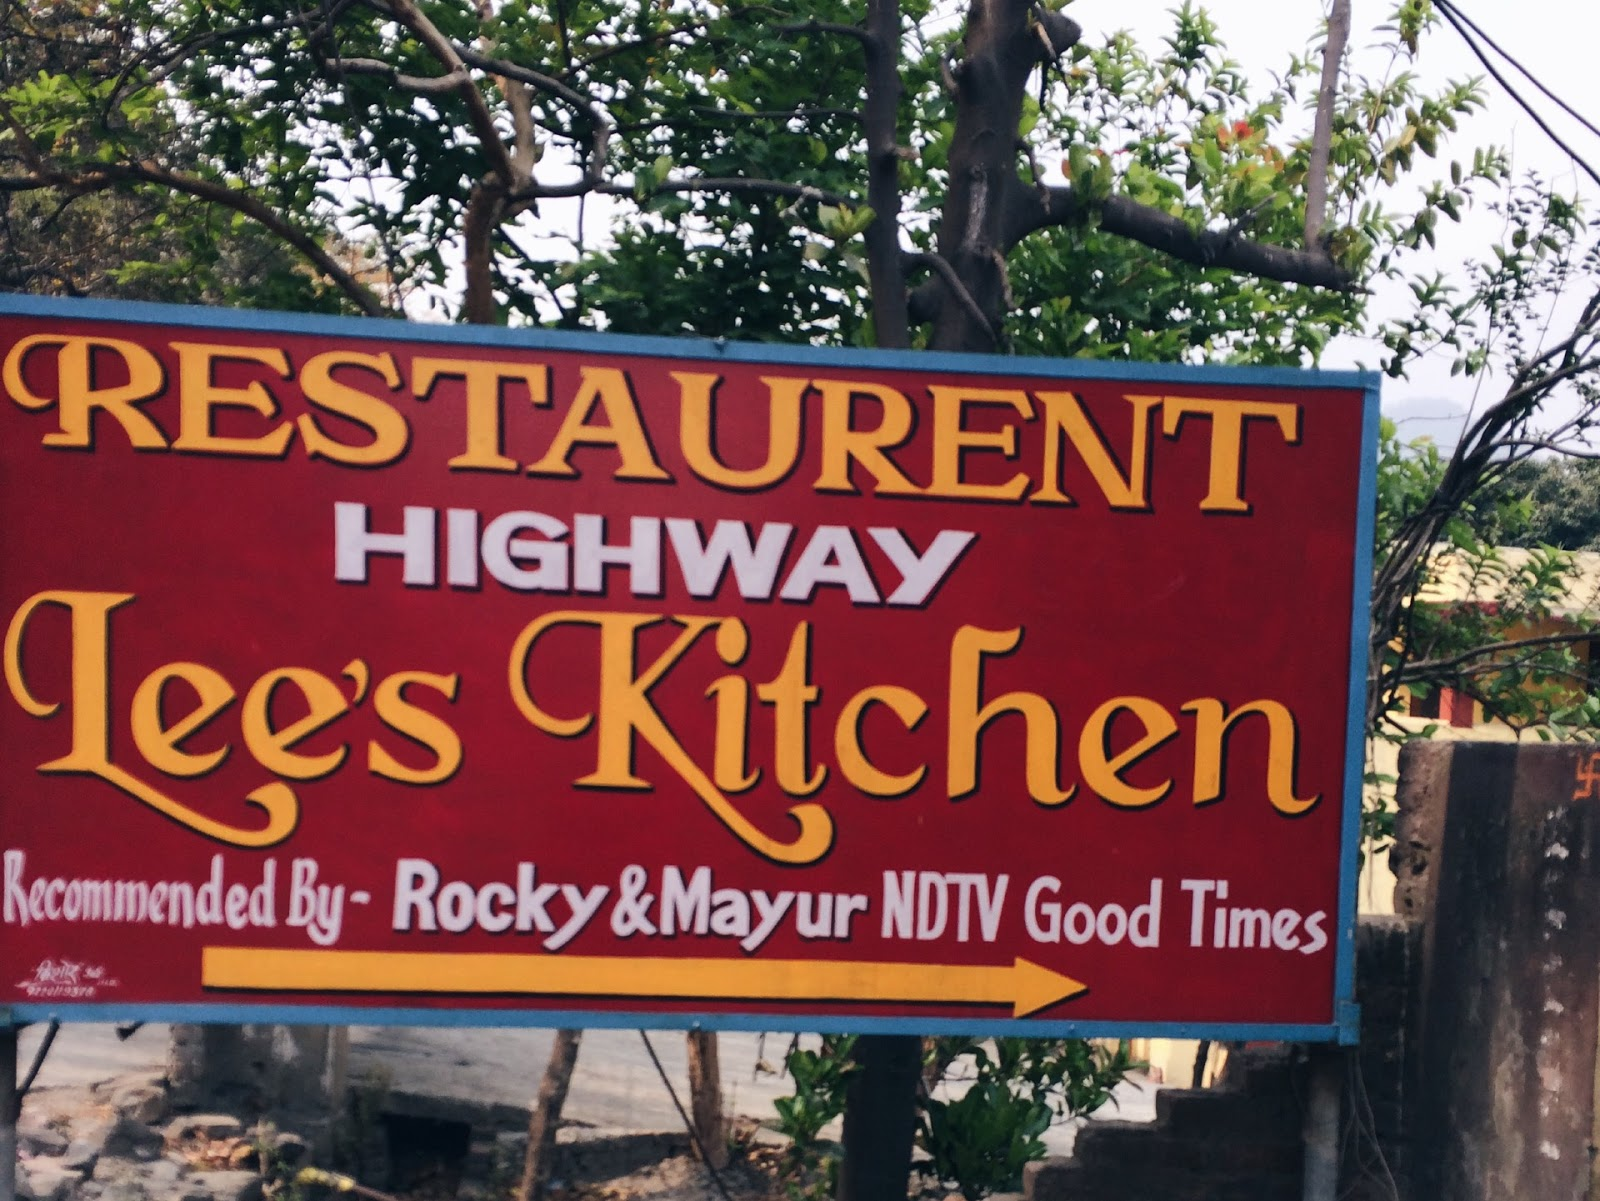 Sequins and Sangria: Stop at Lee's Kitchen on your way to Nainital